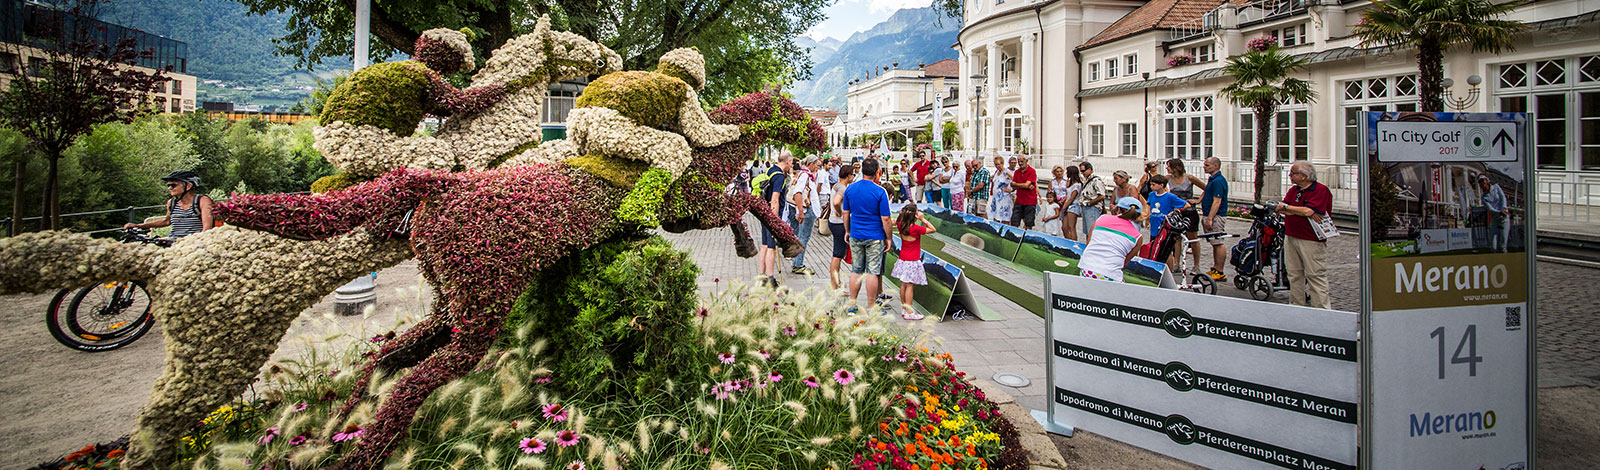 incitygolf-merano-2017-slide-home-02